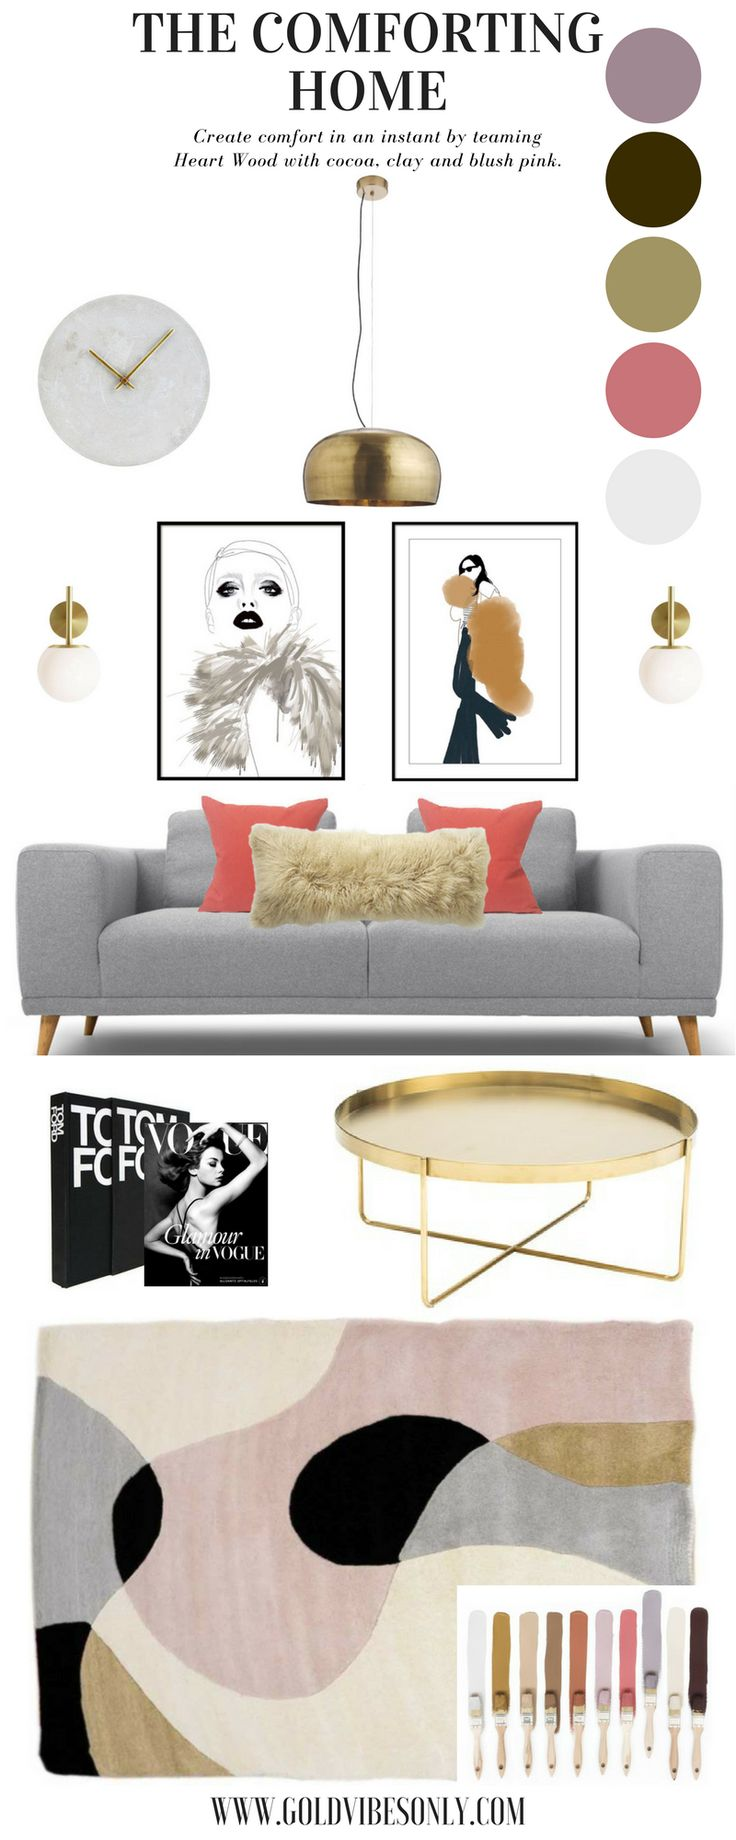 goldvibesonly HEART WOOD   HOW TO STYLE DULUX COLOUR OF THE YEAR 2018 interior design home decor heart wood dusty rose lilac pink grey sofa retro mid century scheme gold coffee table